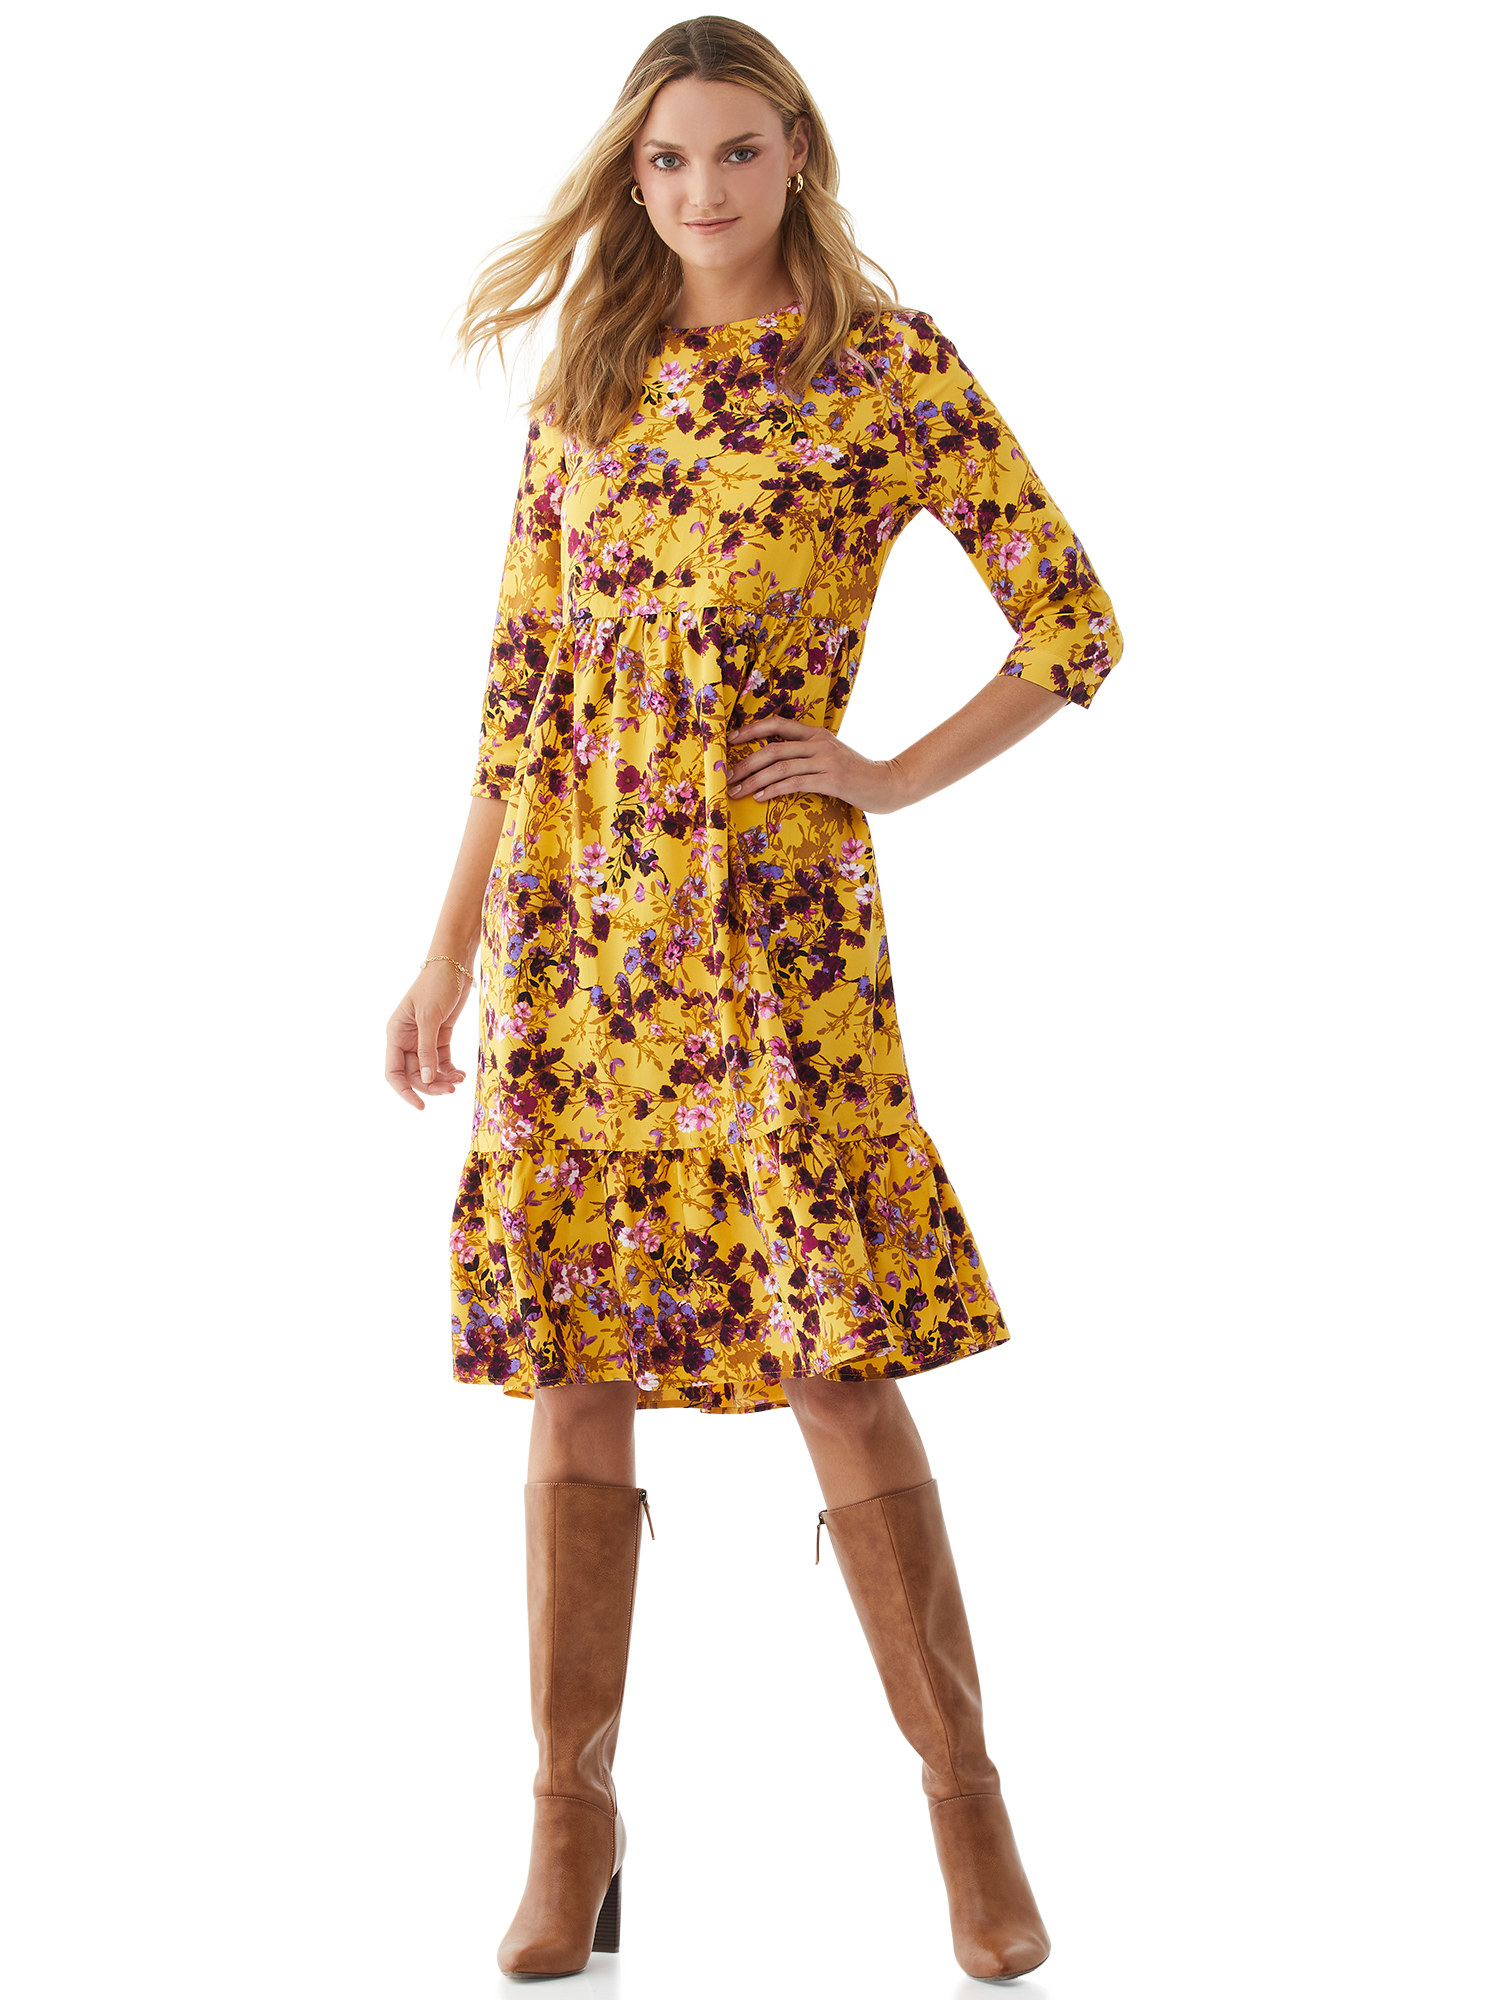 The mustard-colored dress